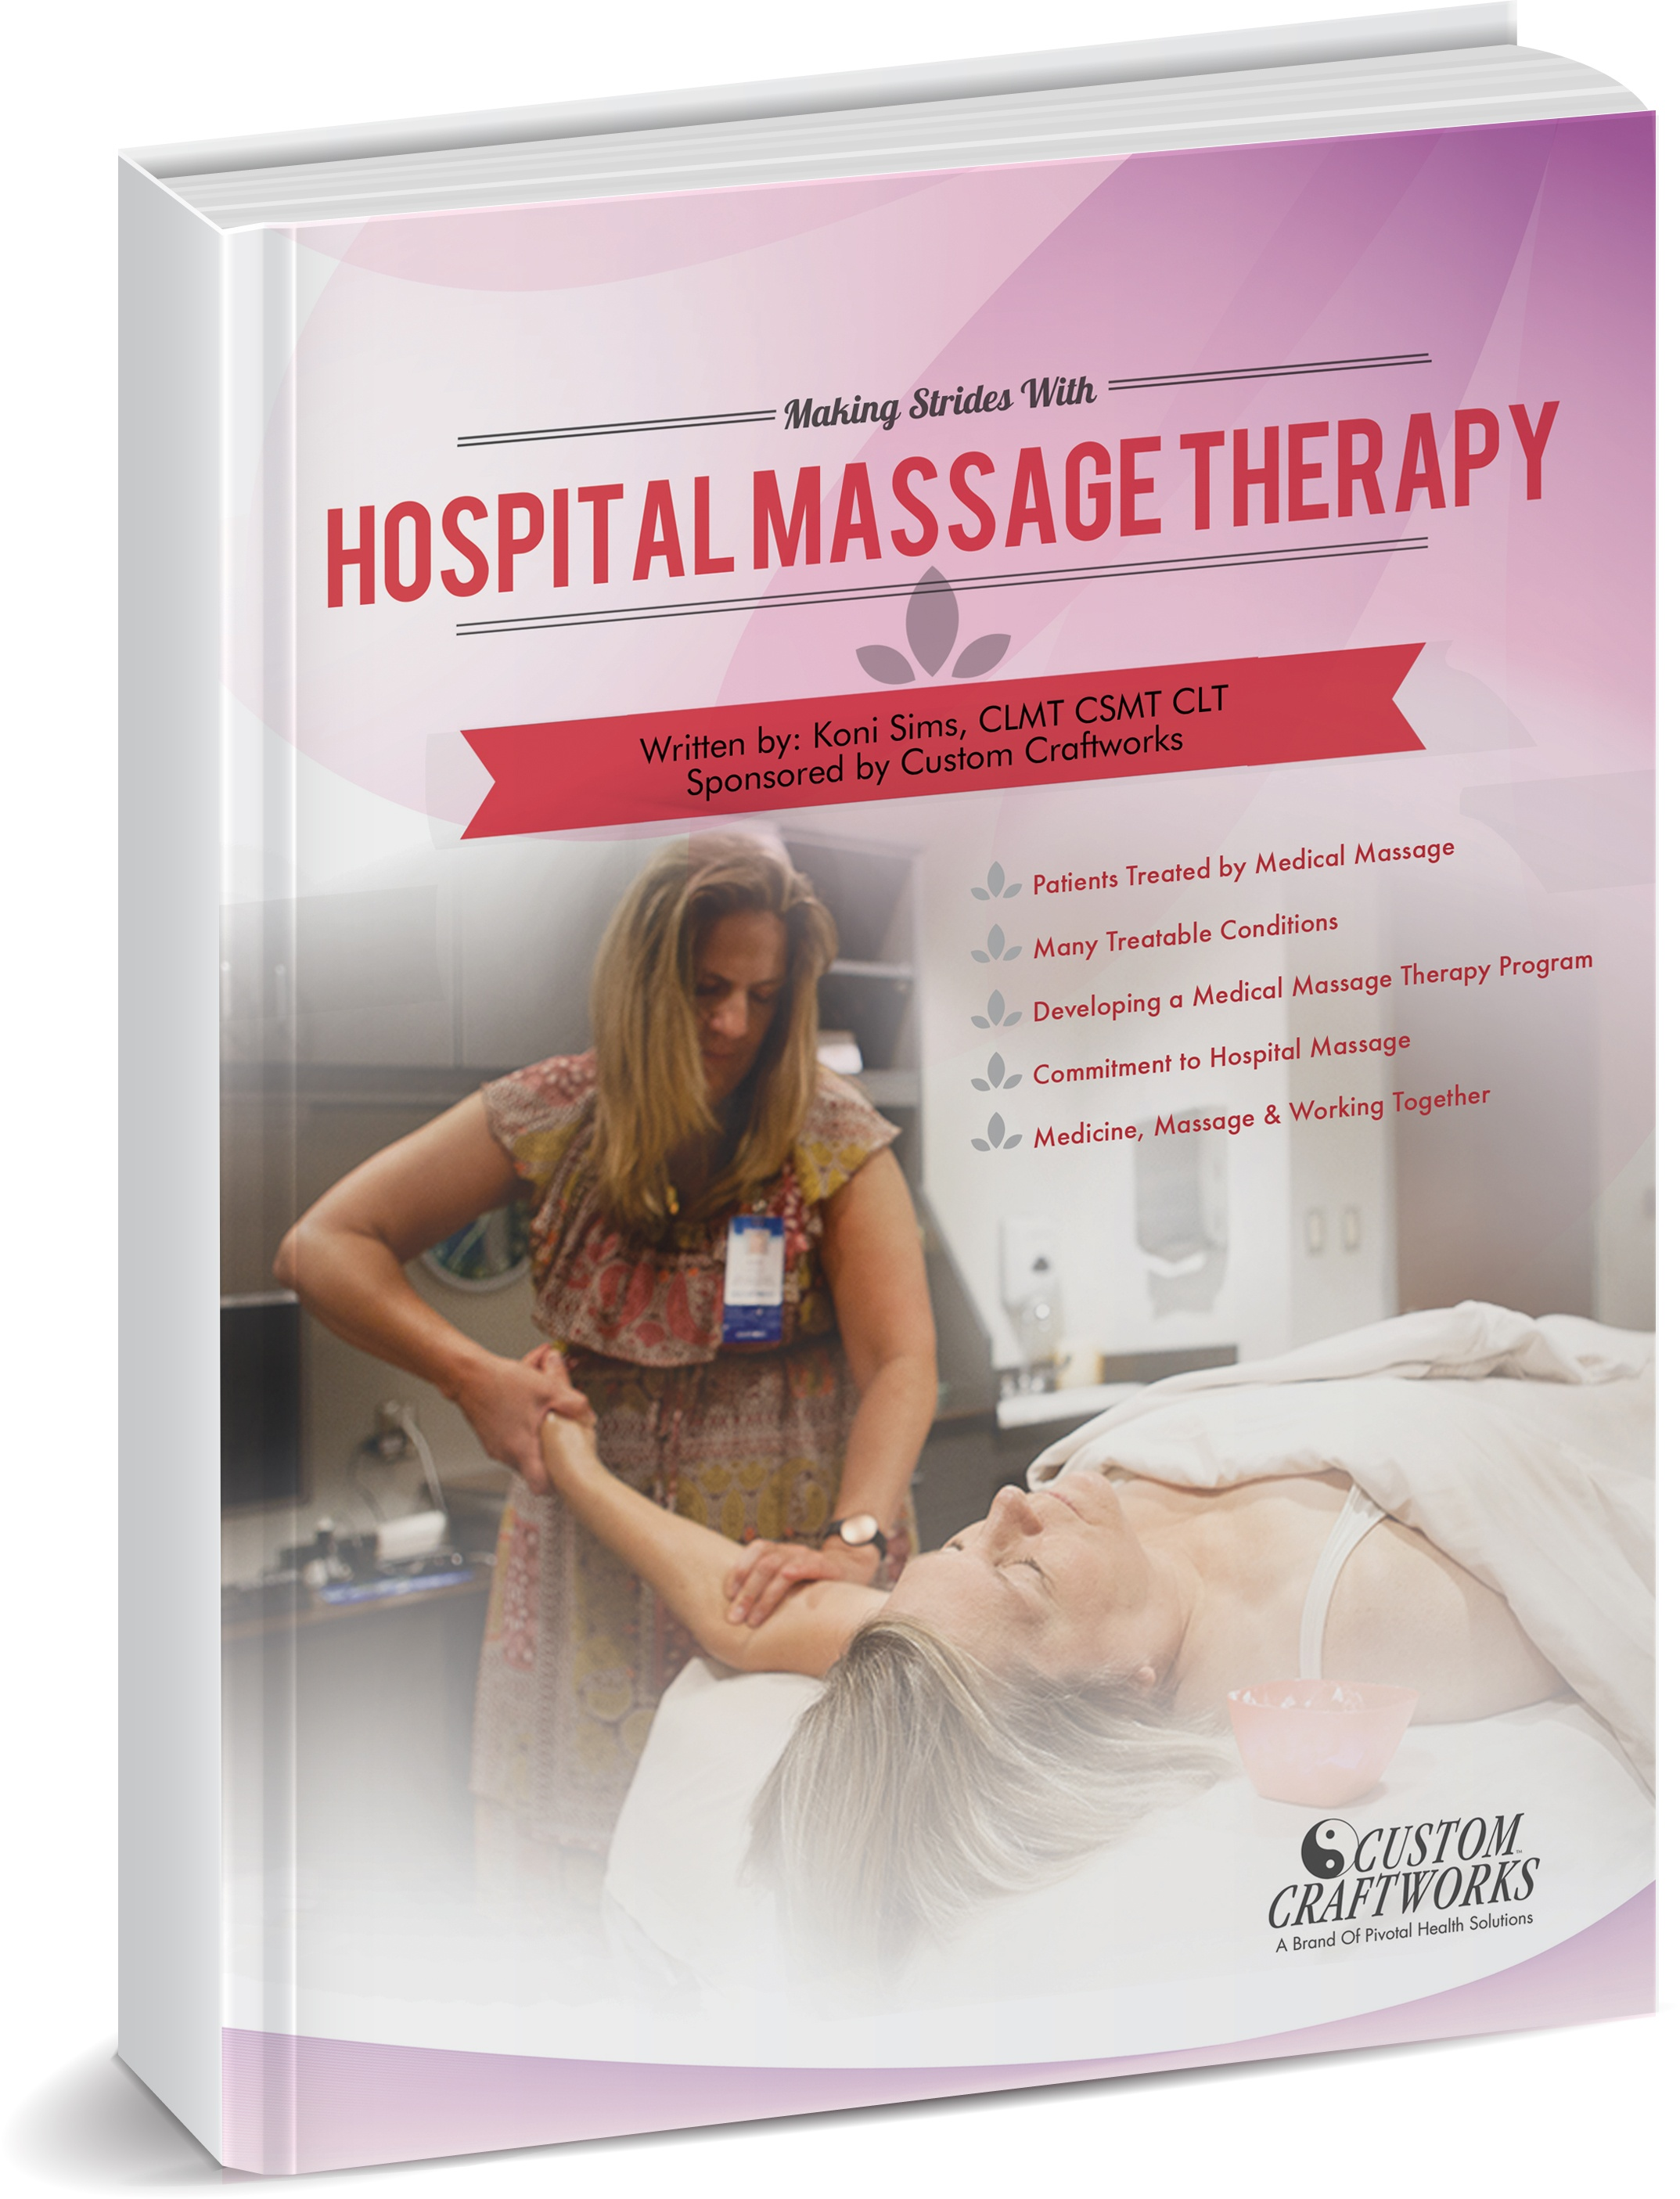 HospitalMassage-ebook cover2.jpg